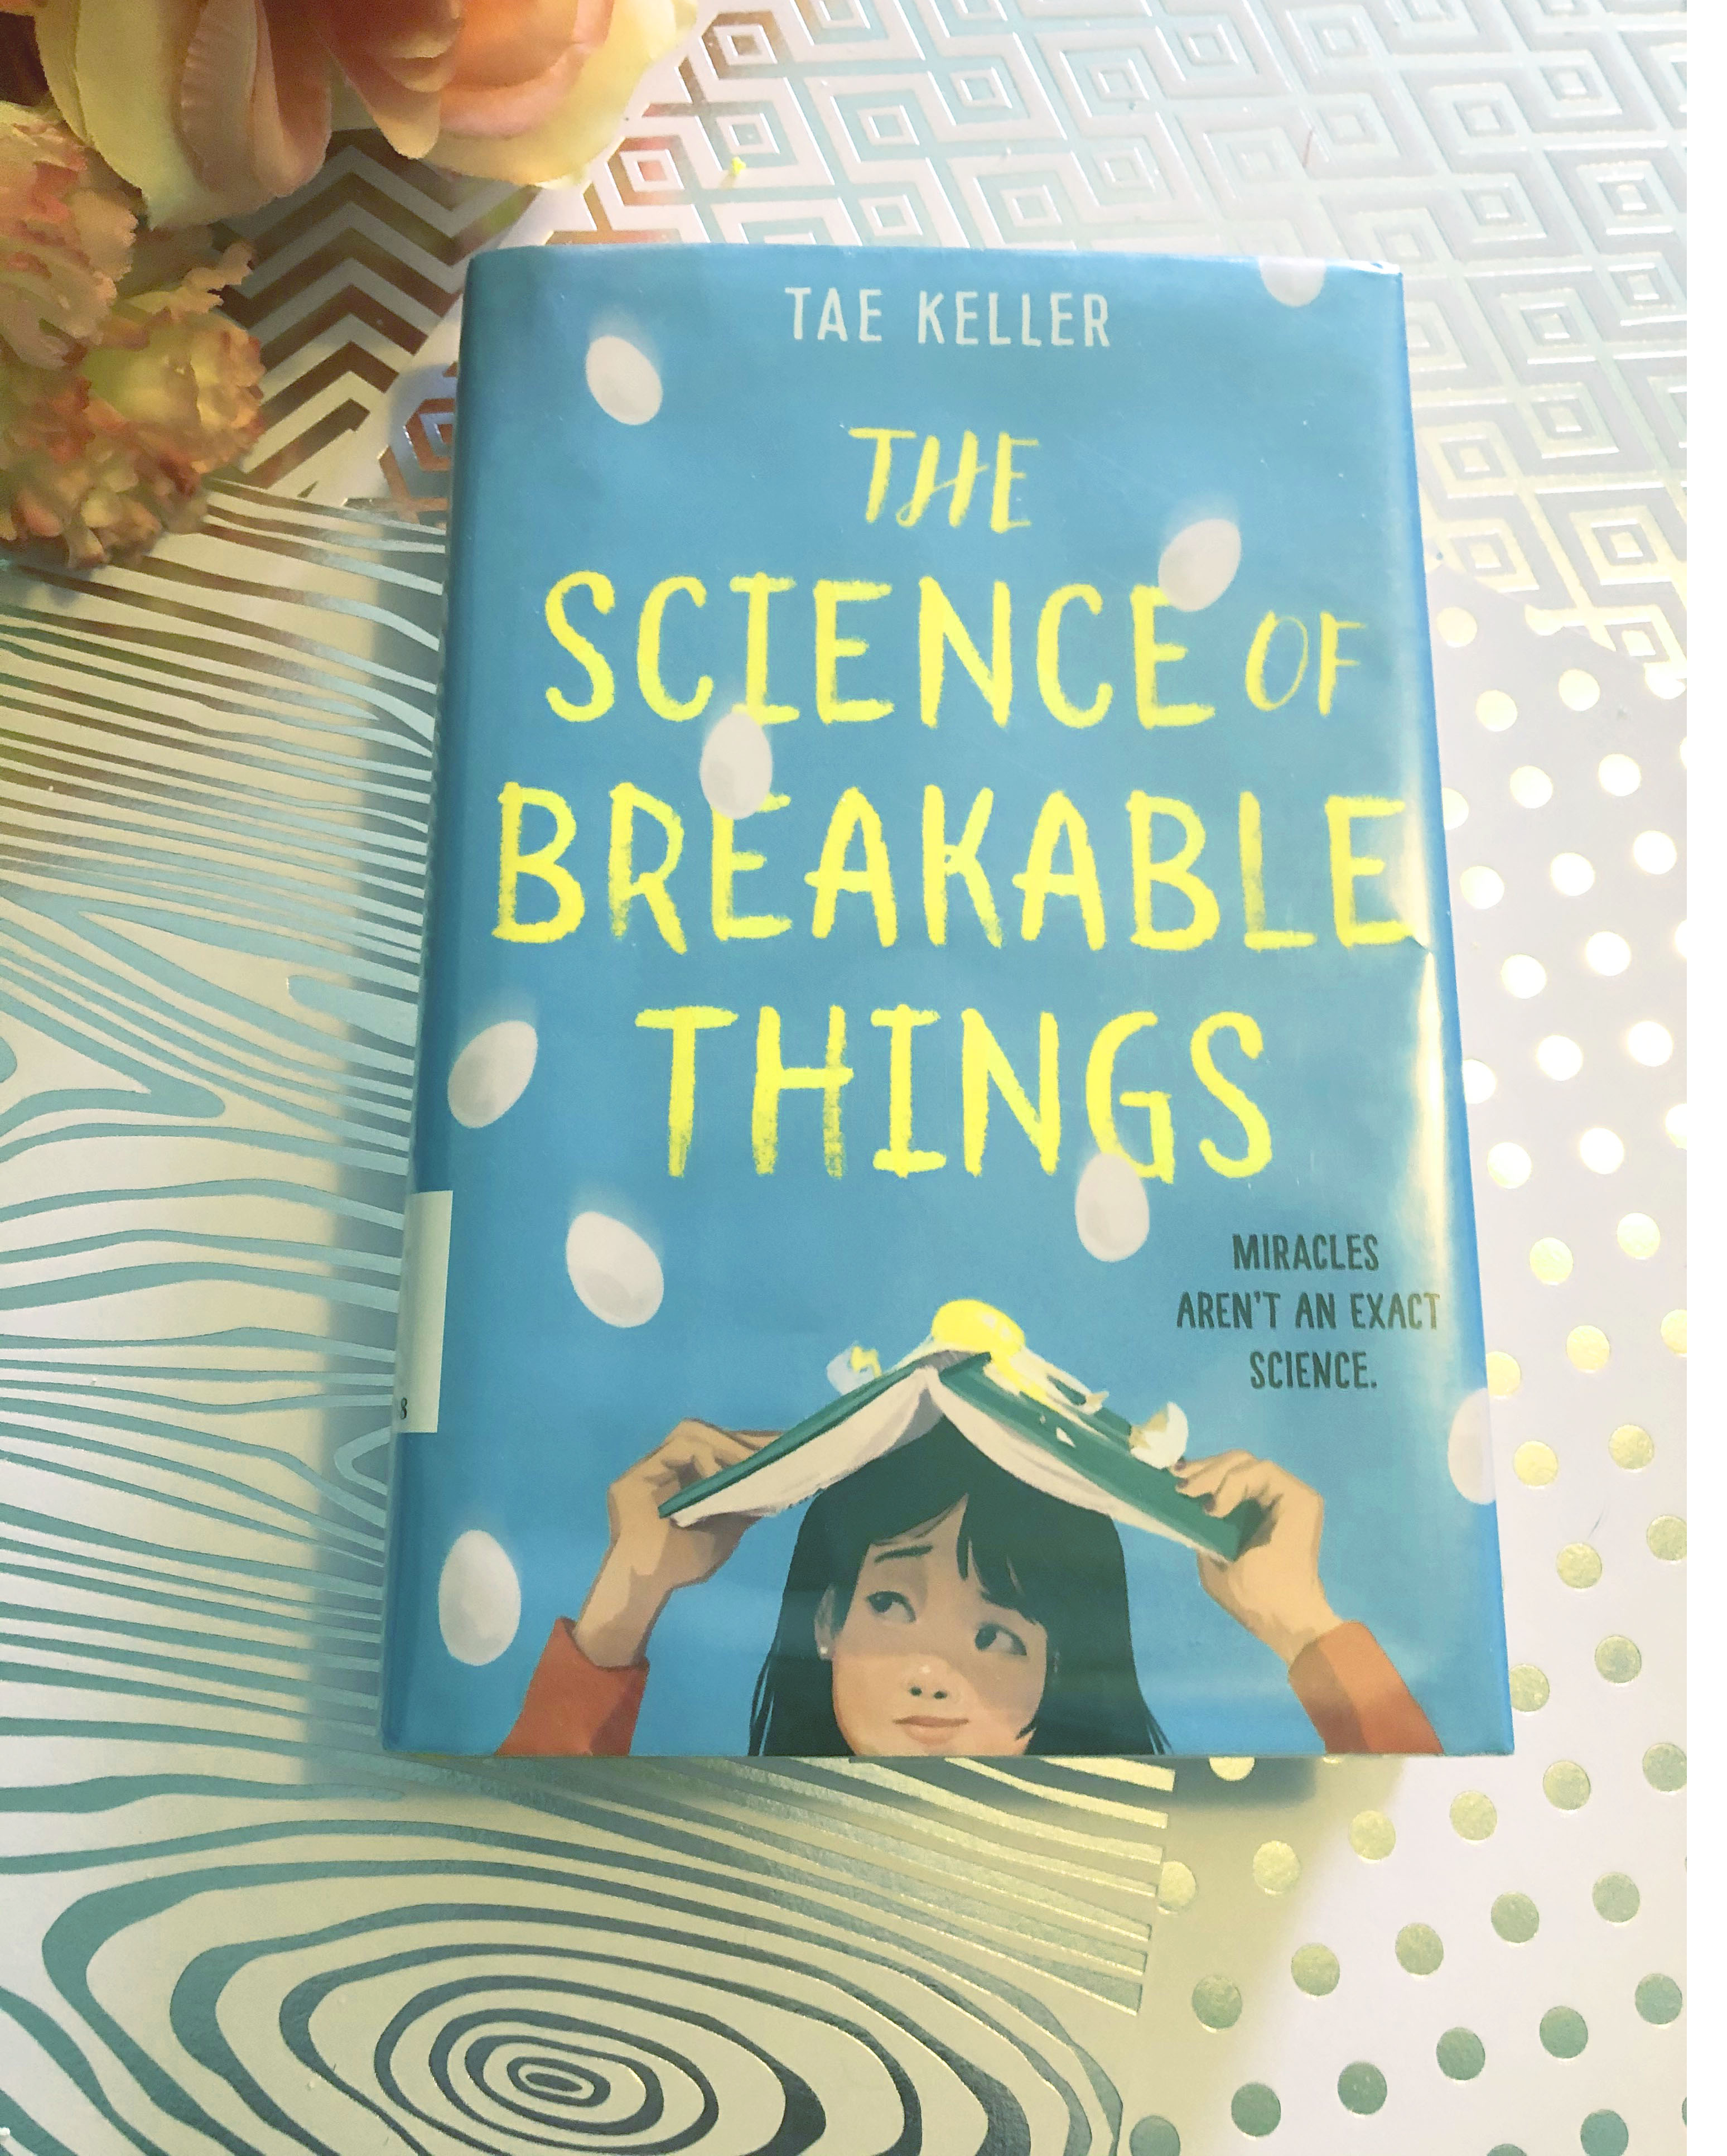 Science of Breakable Things Wednesday